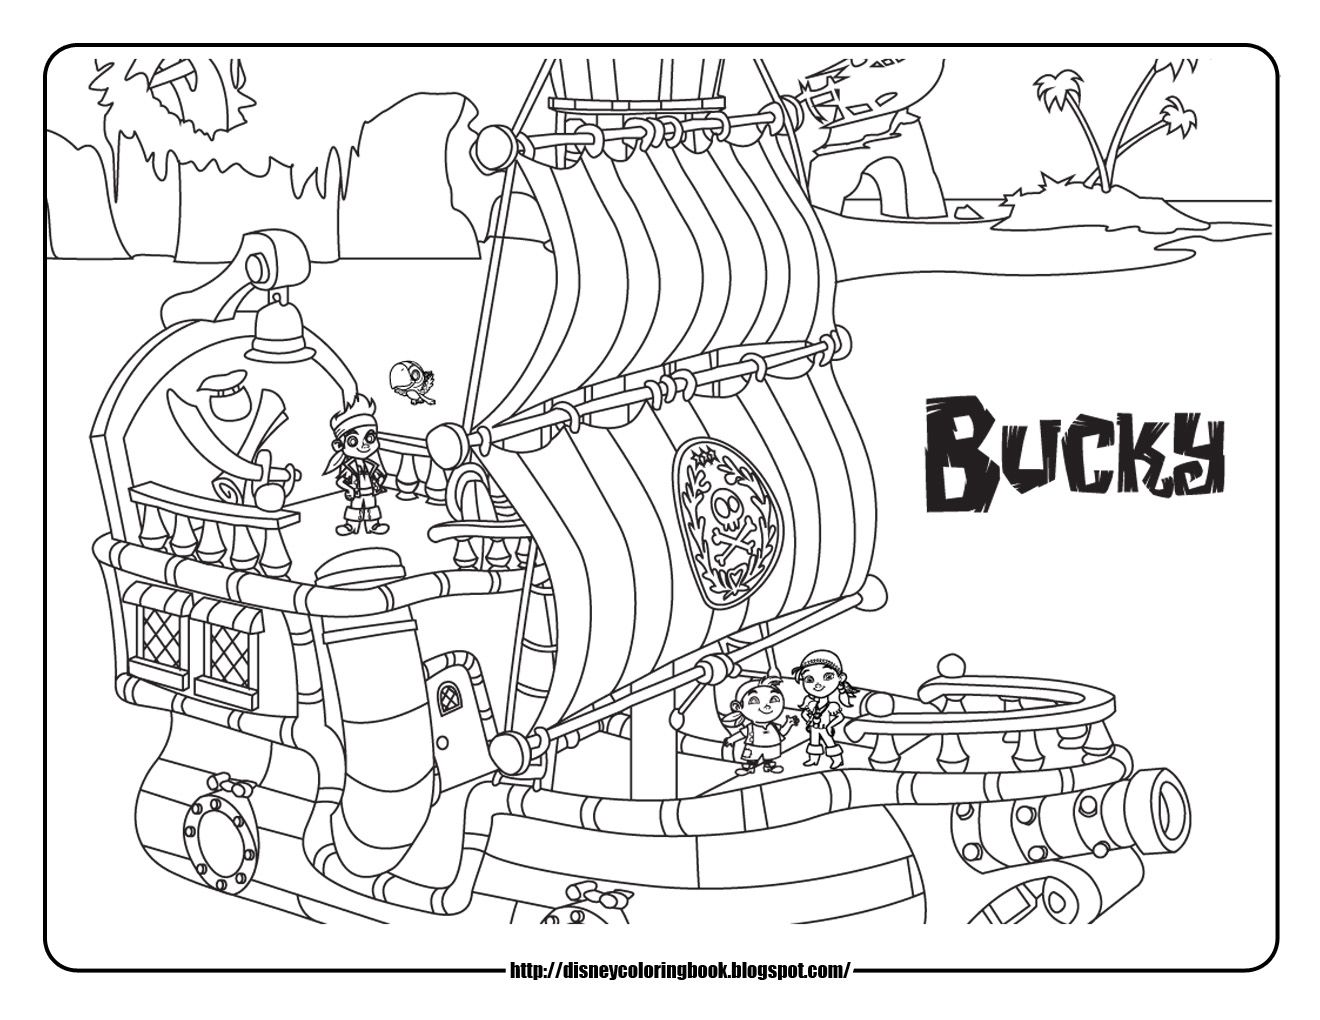 Coloring Pages Jake And The Never Land Pirates Coloring Pages jake and the never land pirates pirate ship coloring pages bucky bucky